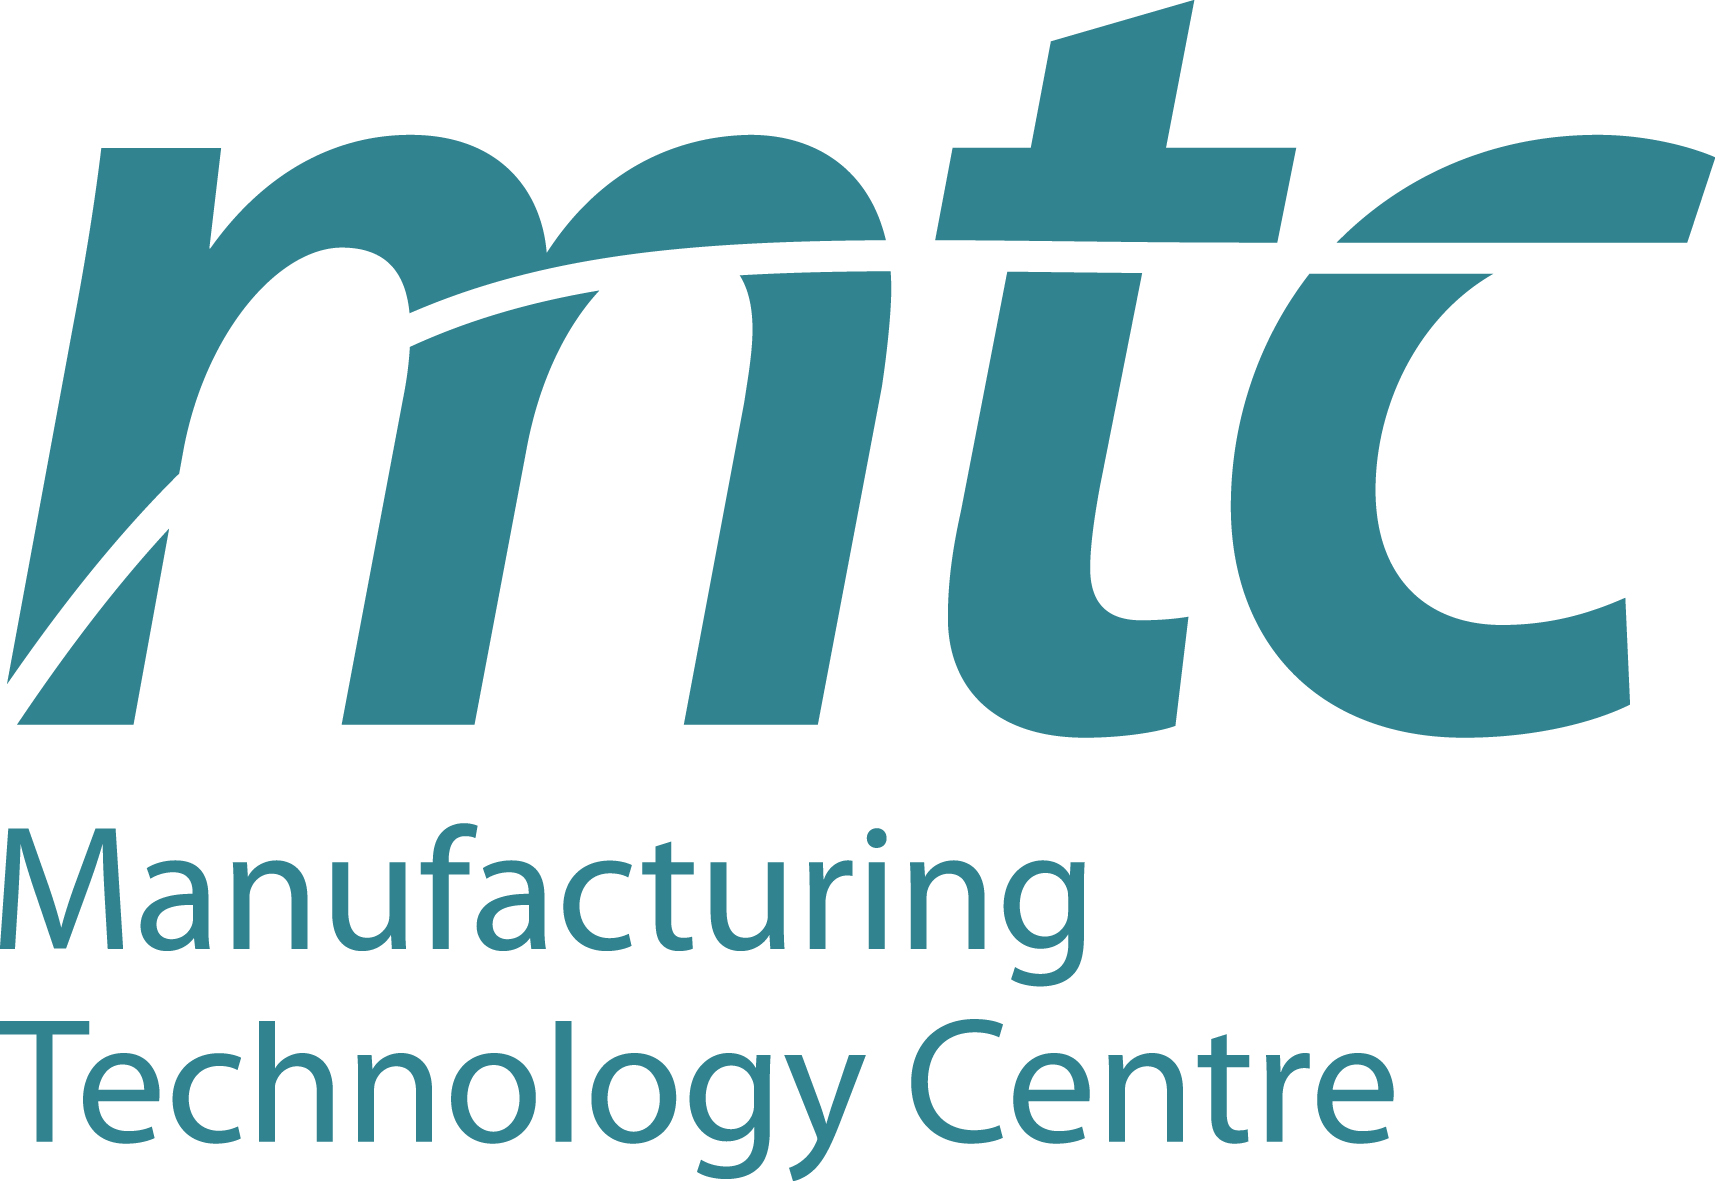 The Manufacturing Technology Centre (MTC)